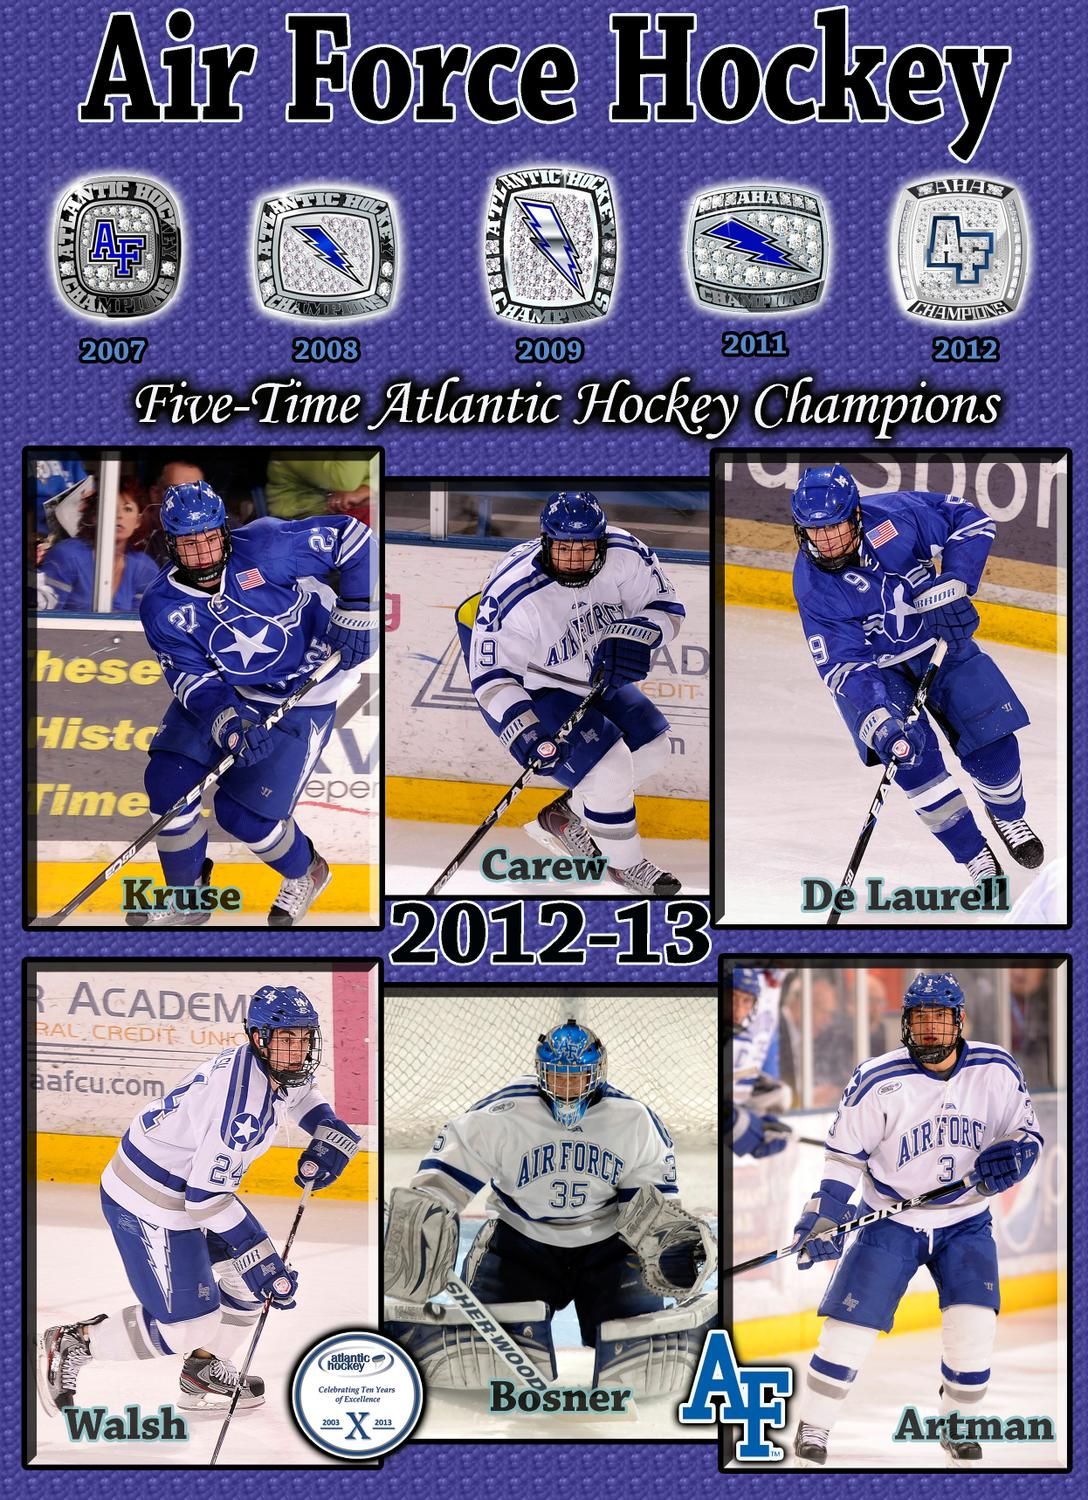 24968f75c15 2012-13 Air Force Hockey Media Guide by Dave Toller - issuu